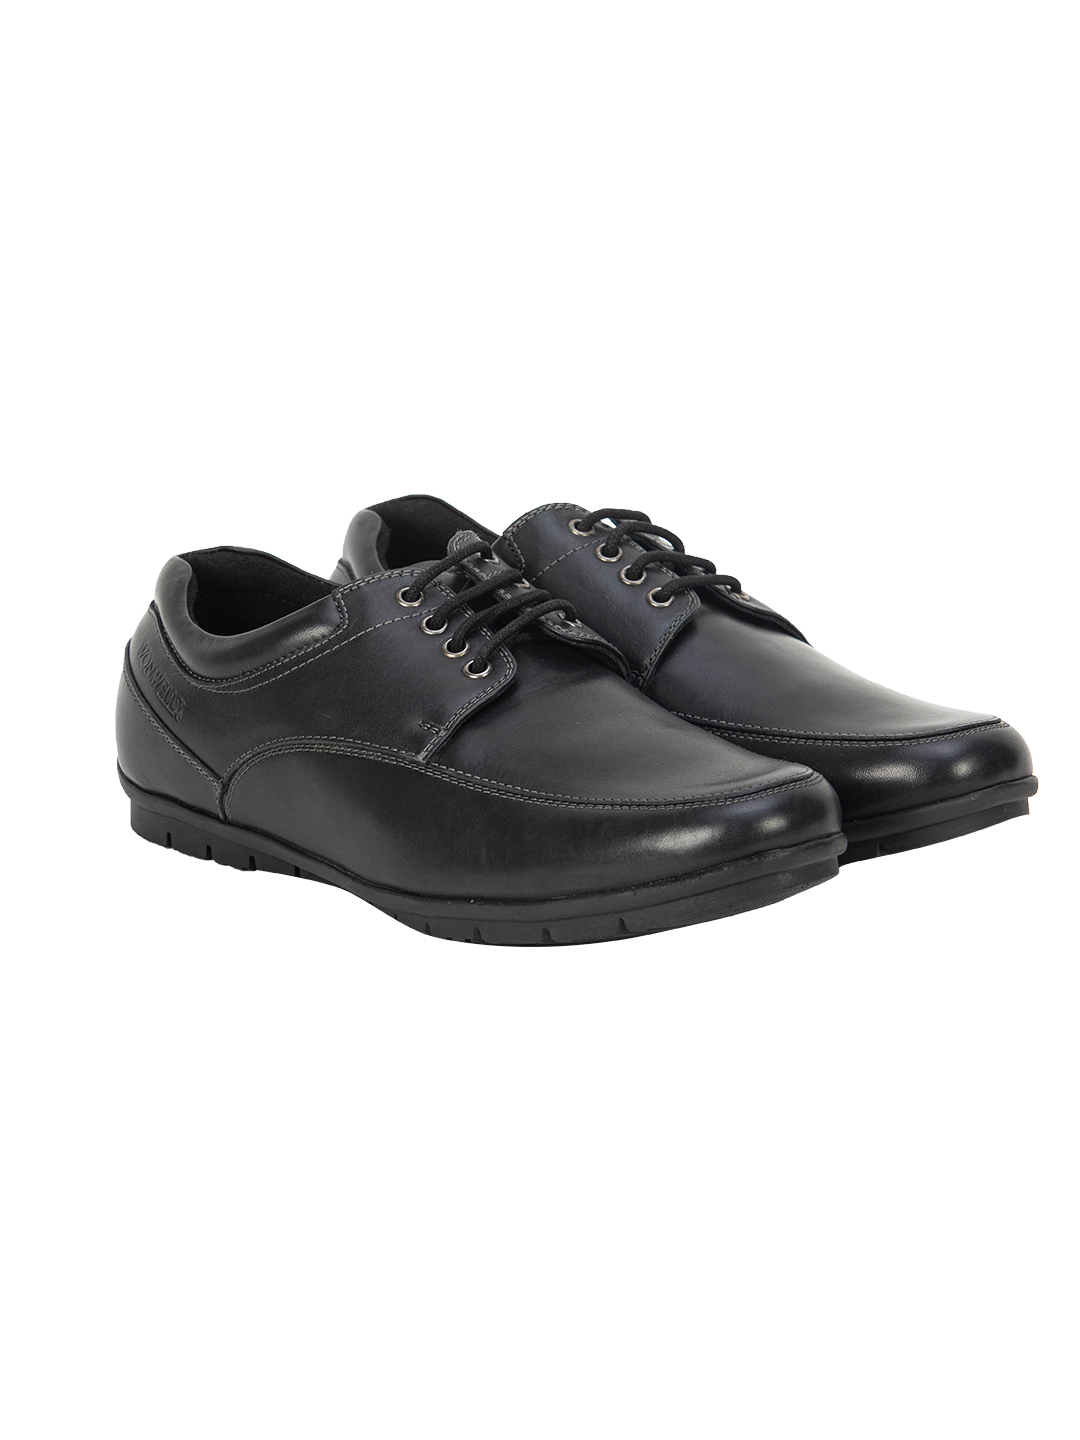 Buy Von Wellx Germany Comfort Black Brayden Shoes Online in Ahmedabad